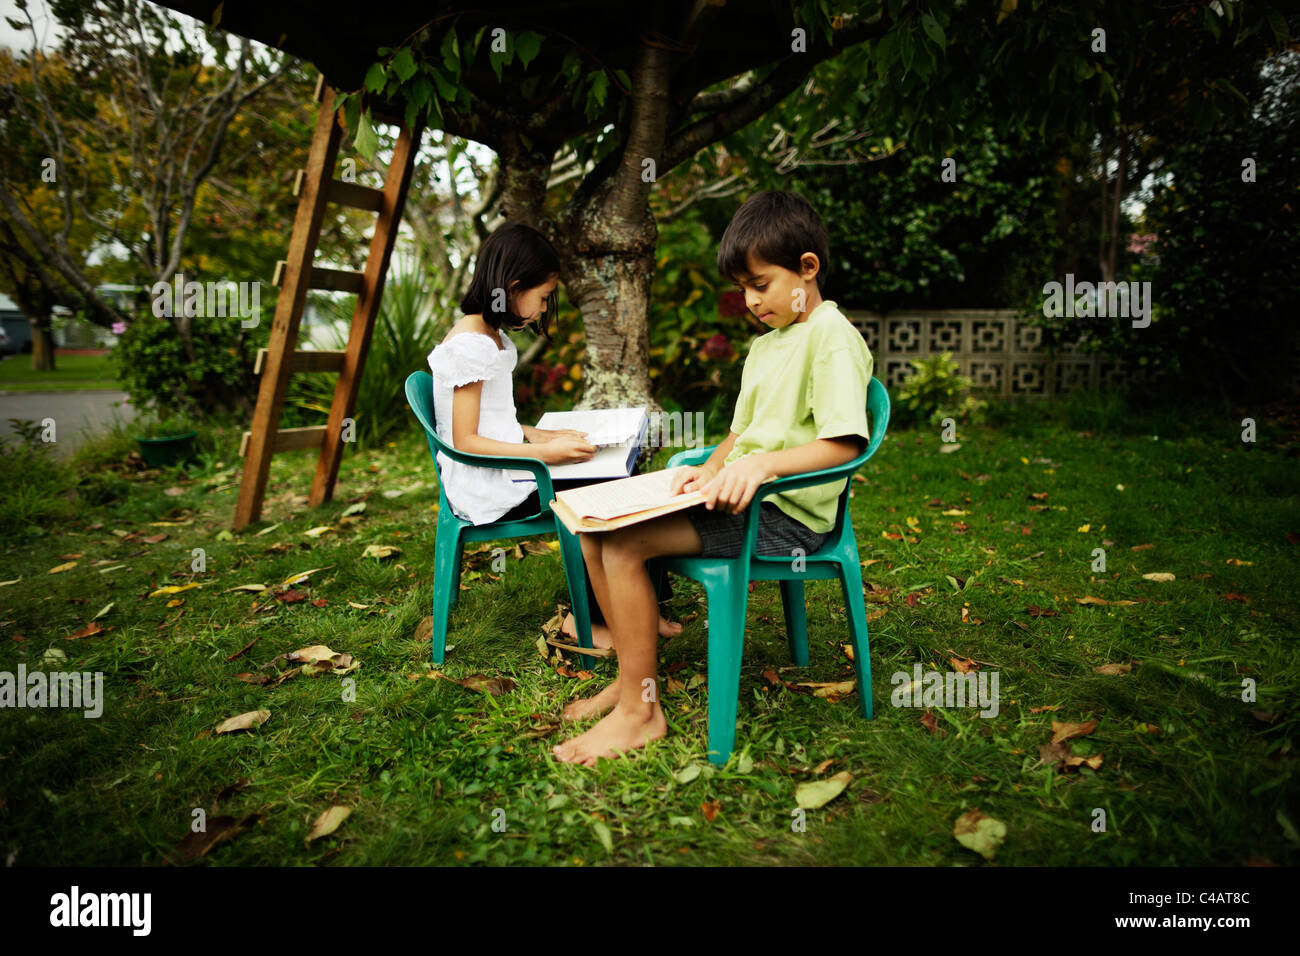 Boy and girl sit in plastic chairs reading books in garden underneath treehouse. - Stock Image